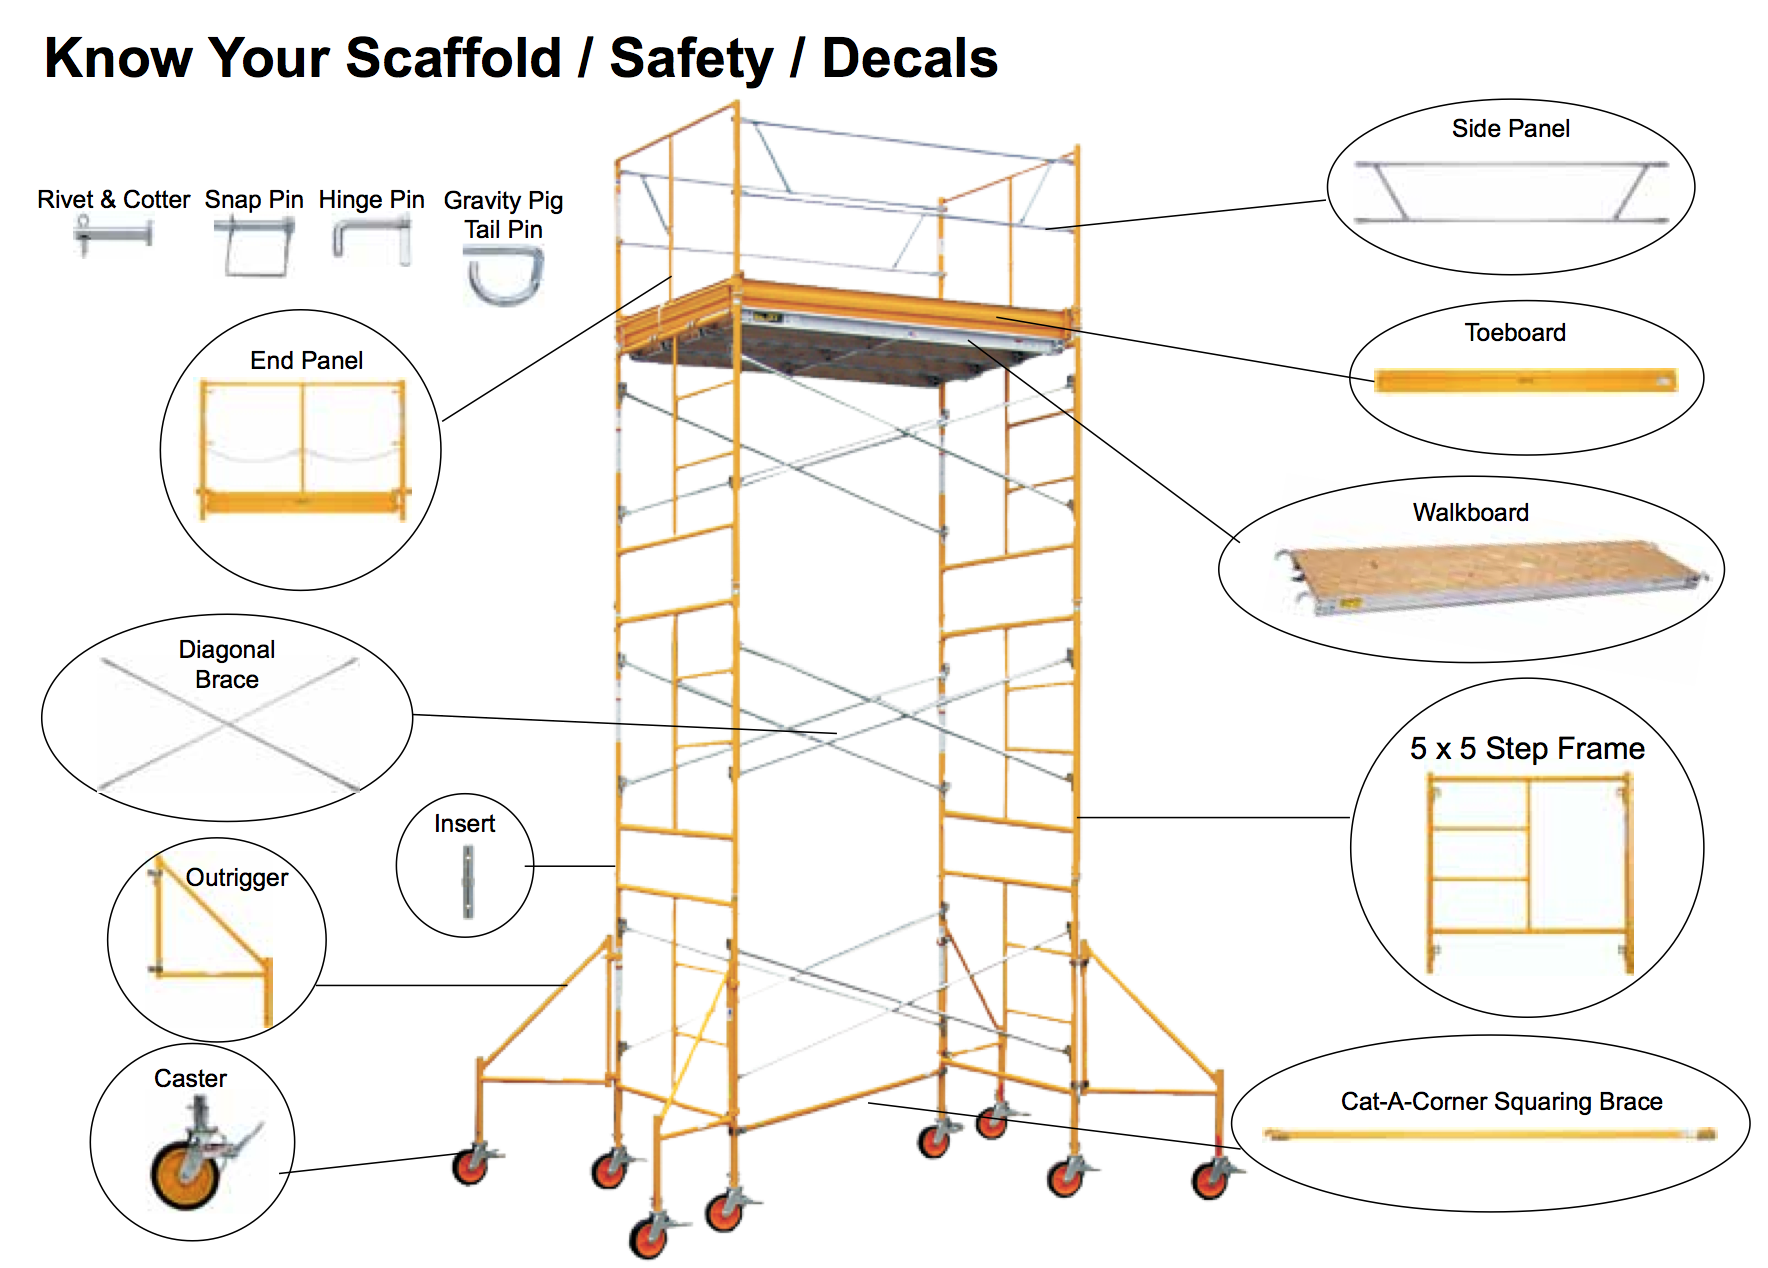 Buy Scaffolding In Rochester And Ithaca Ny From The Duke